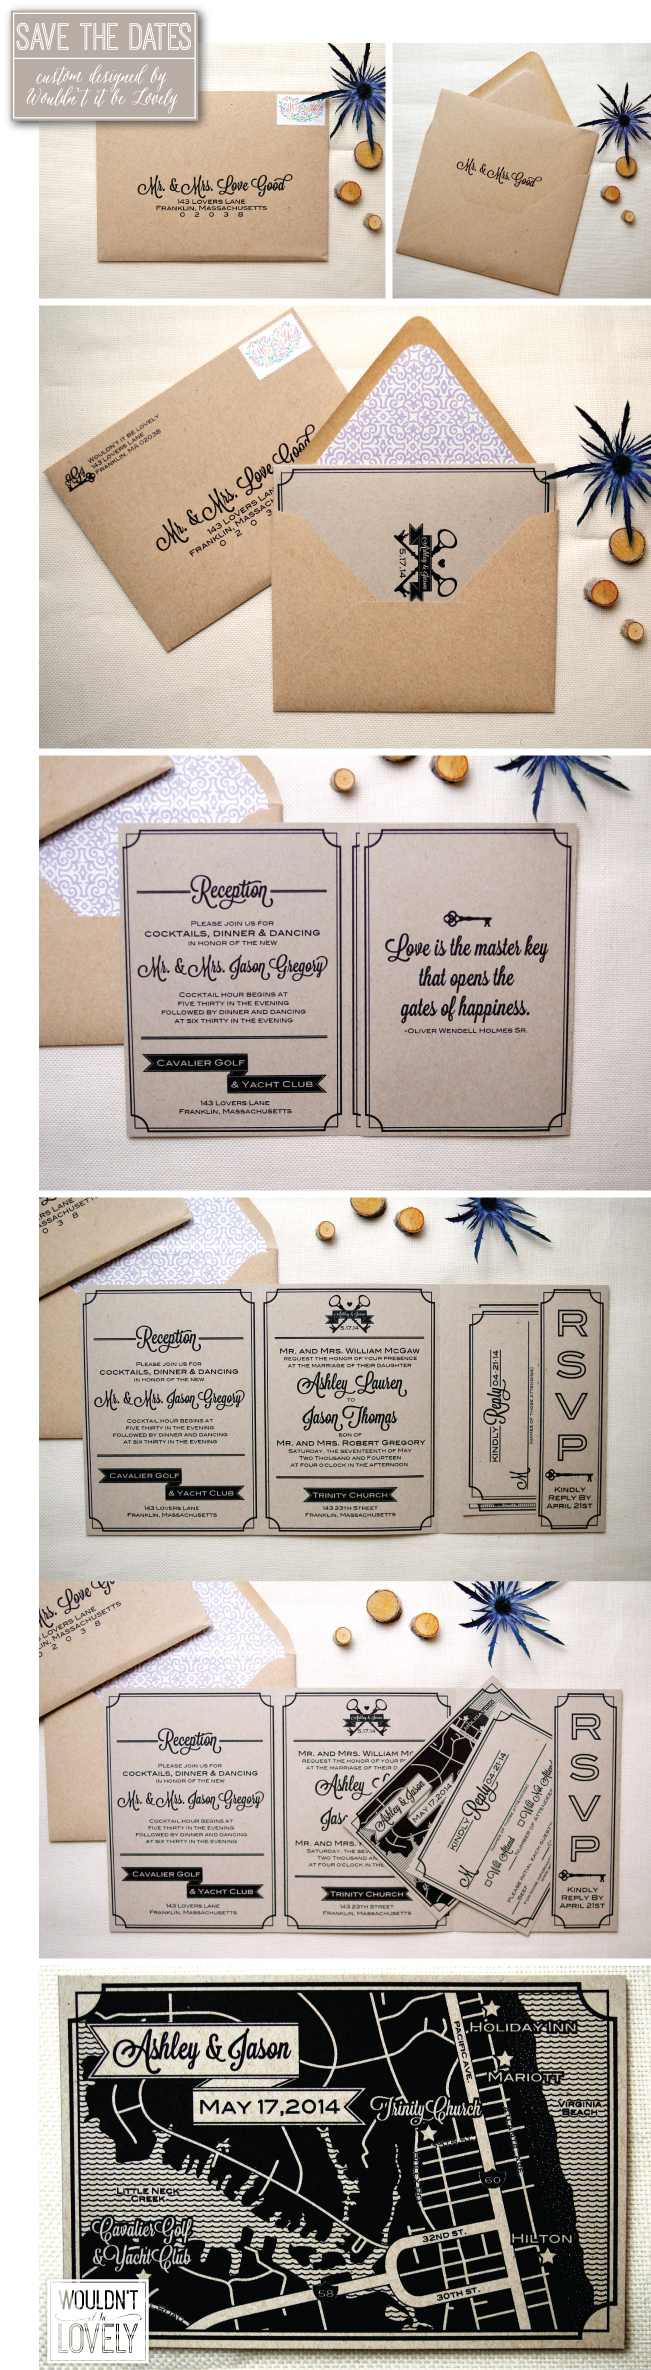 rustic southern wedding invitation